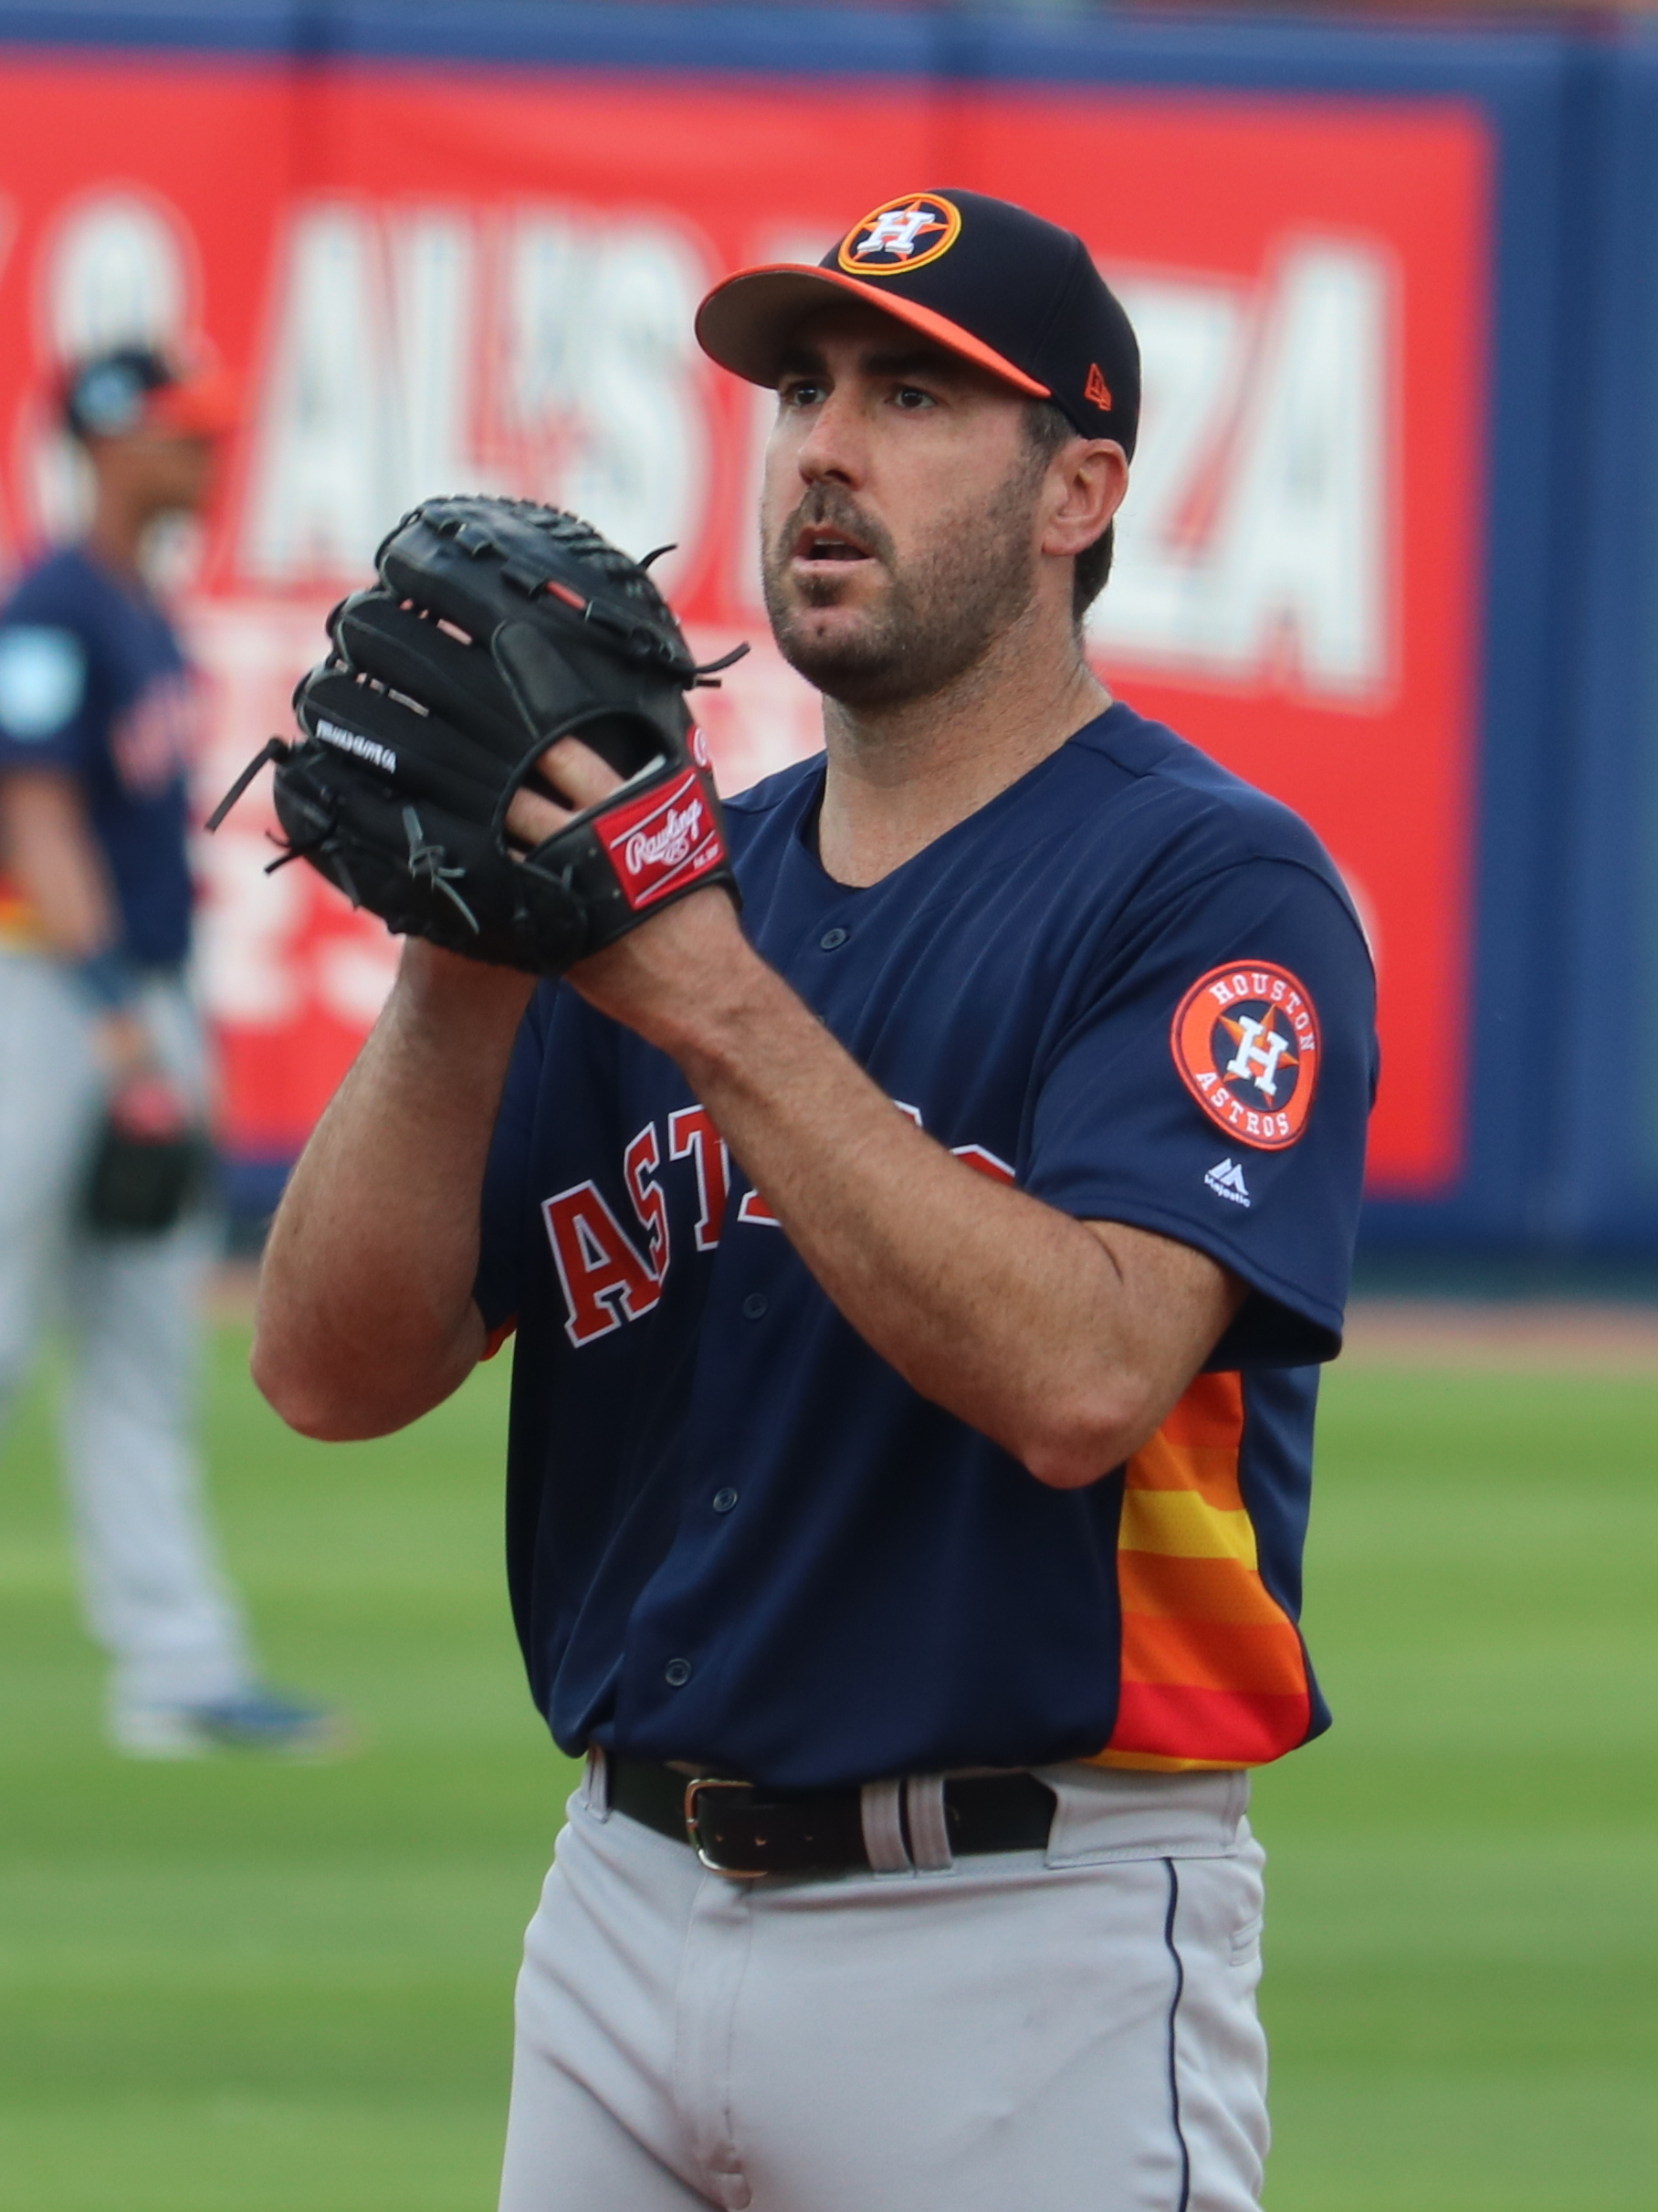 August 16, 2019 -- The Astros are forecasted to beat the Athletics on the road. The Astros projected starting pitcher is Justin Verlander and top hitter is George Springer.